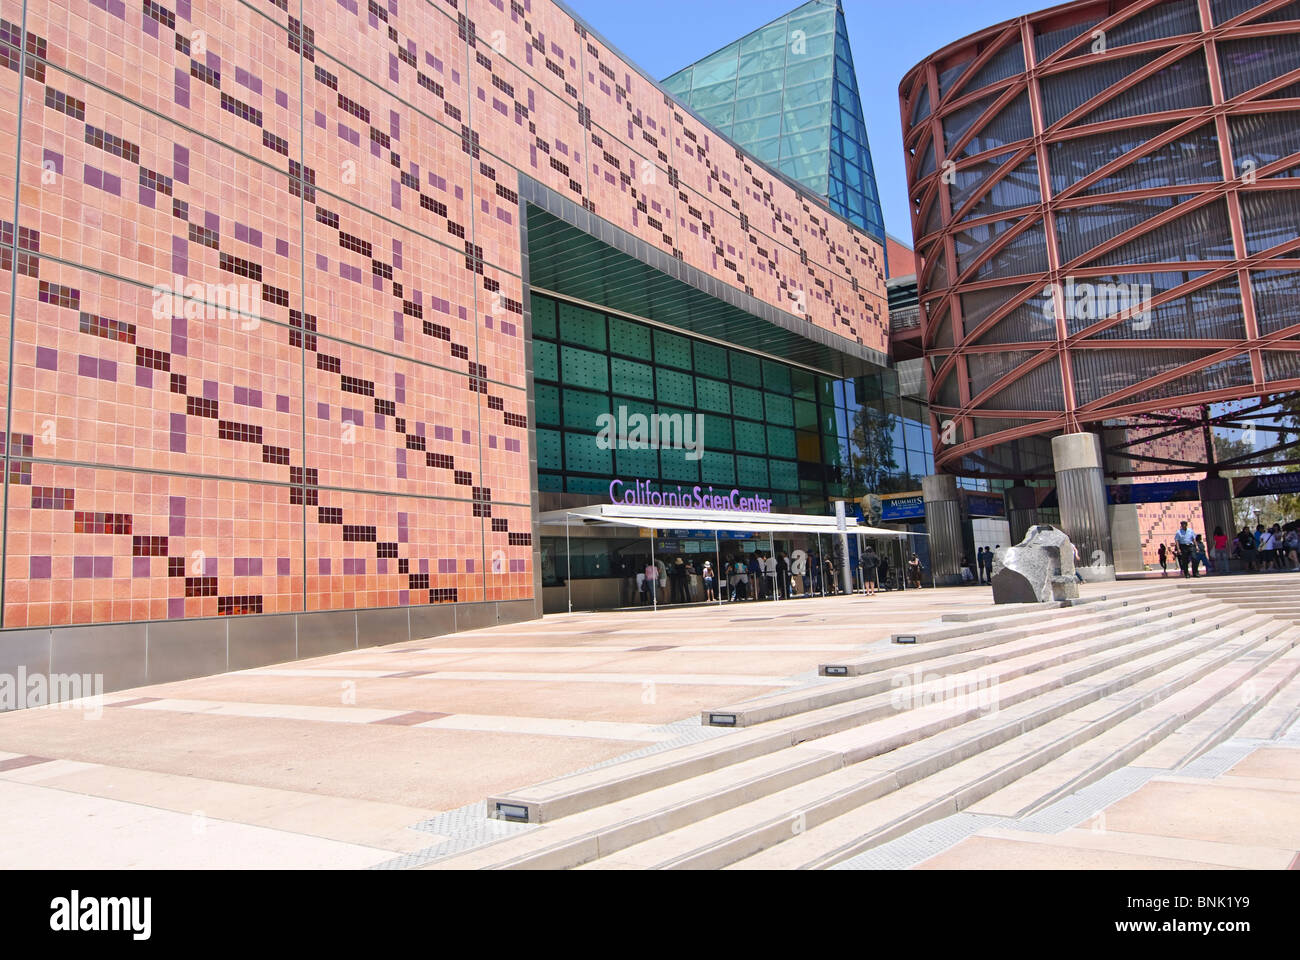 Front Entrance of the California Science Center in Los Angeles. - Stock Image